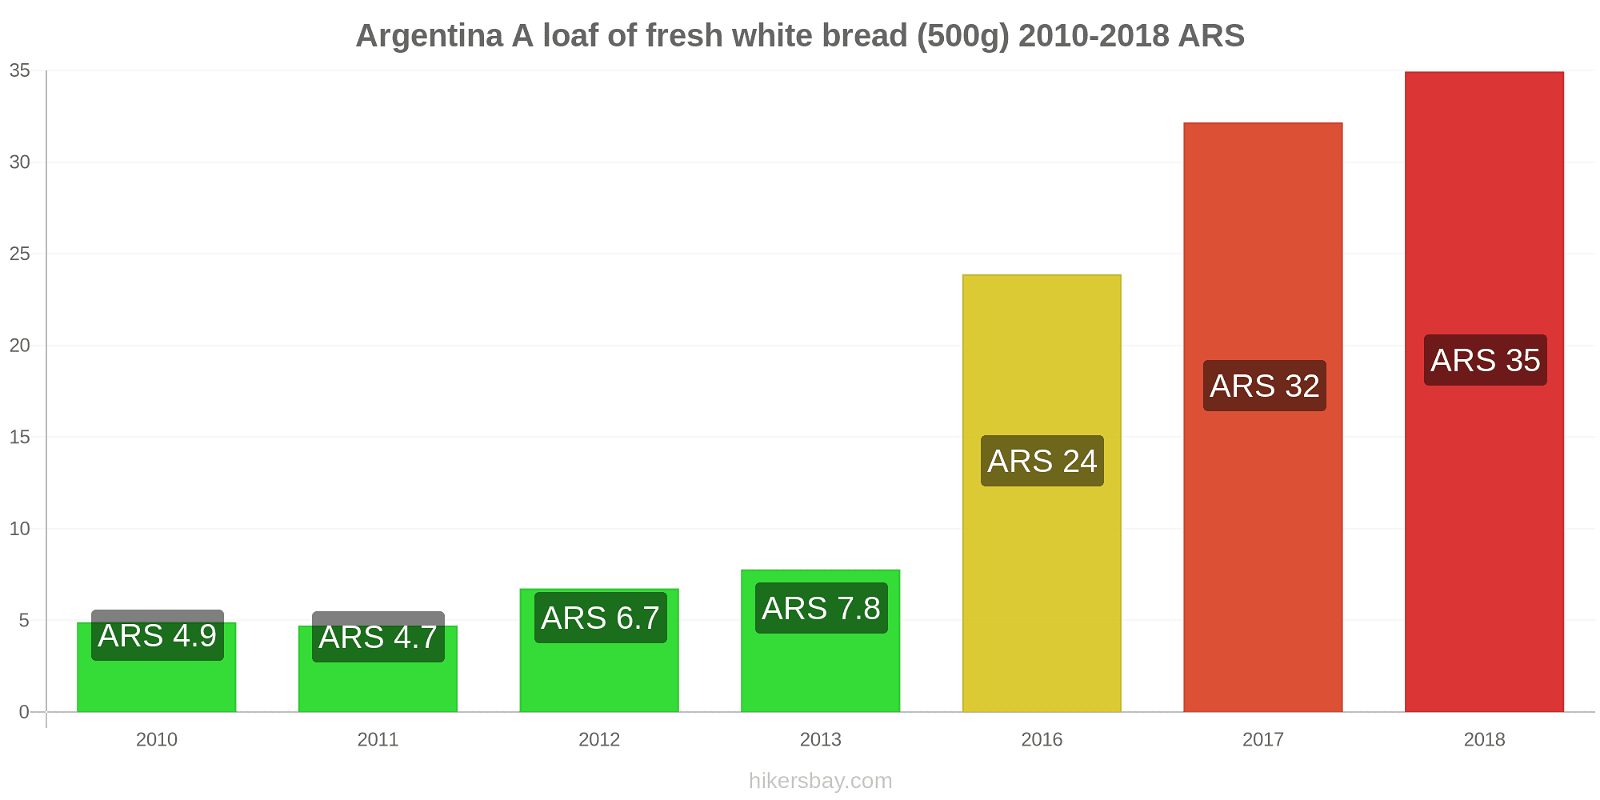 Argentina price changes A loaf of fresh white bread (500g) hikersbay.com